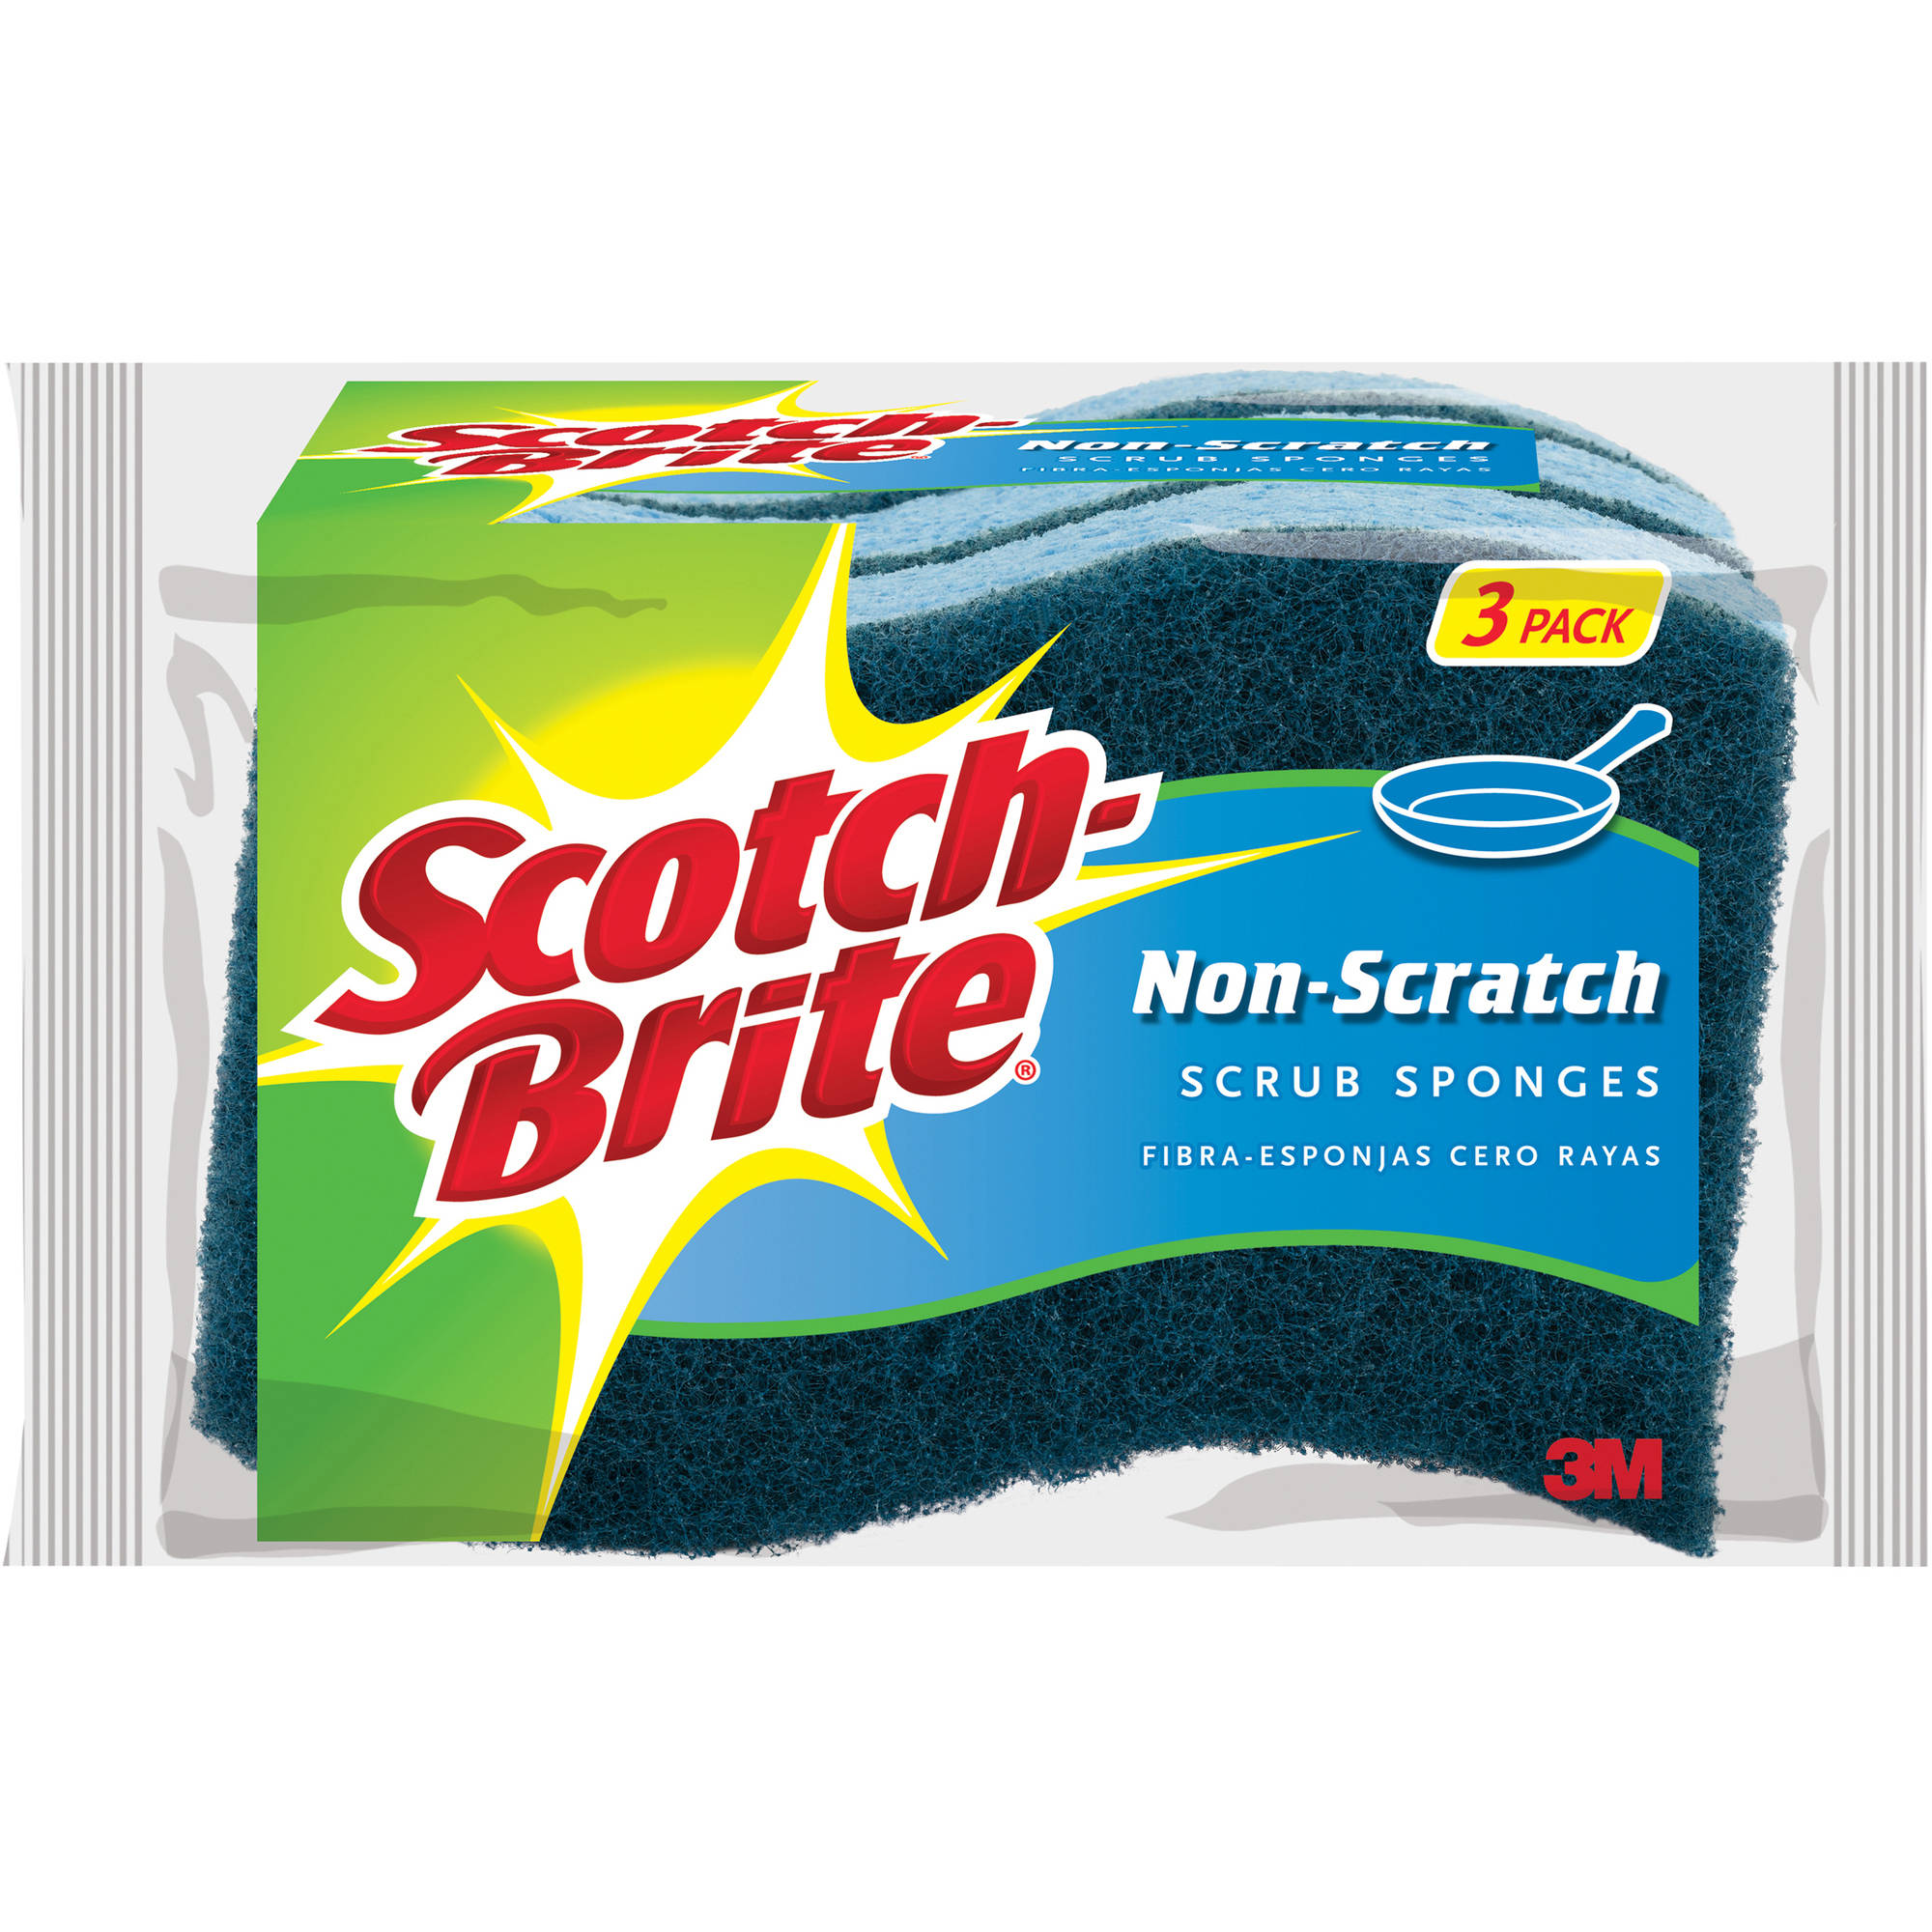 Scotch-Brite No Scratch Multi-Purpose Scrub Sponges, 3 pack